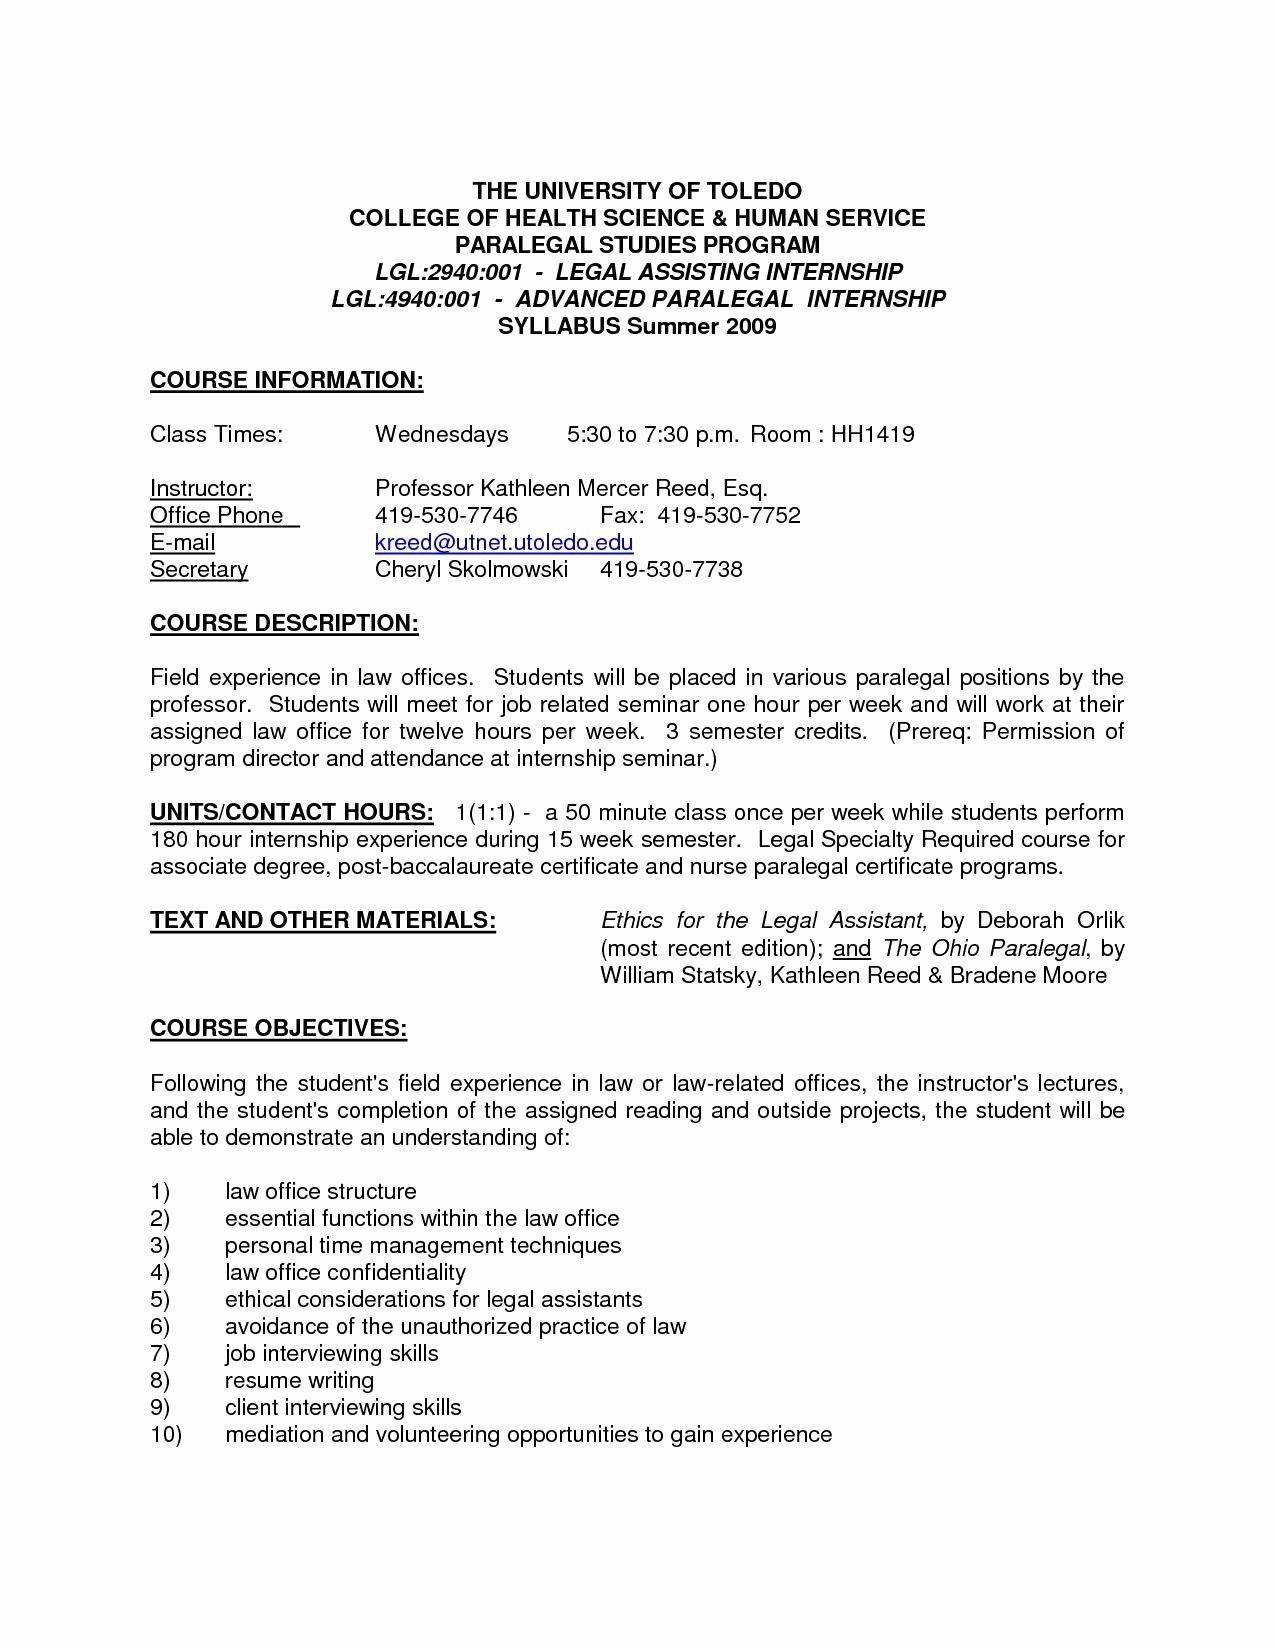 26 Cover Letter For Legal Assistant Cover Letter For Resume Job Cover Letter Cover Letter Tips